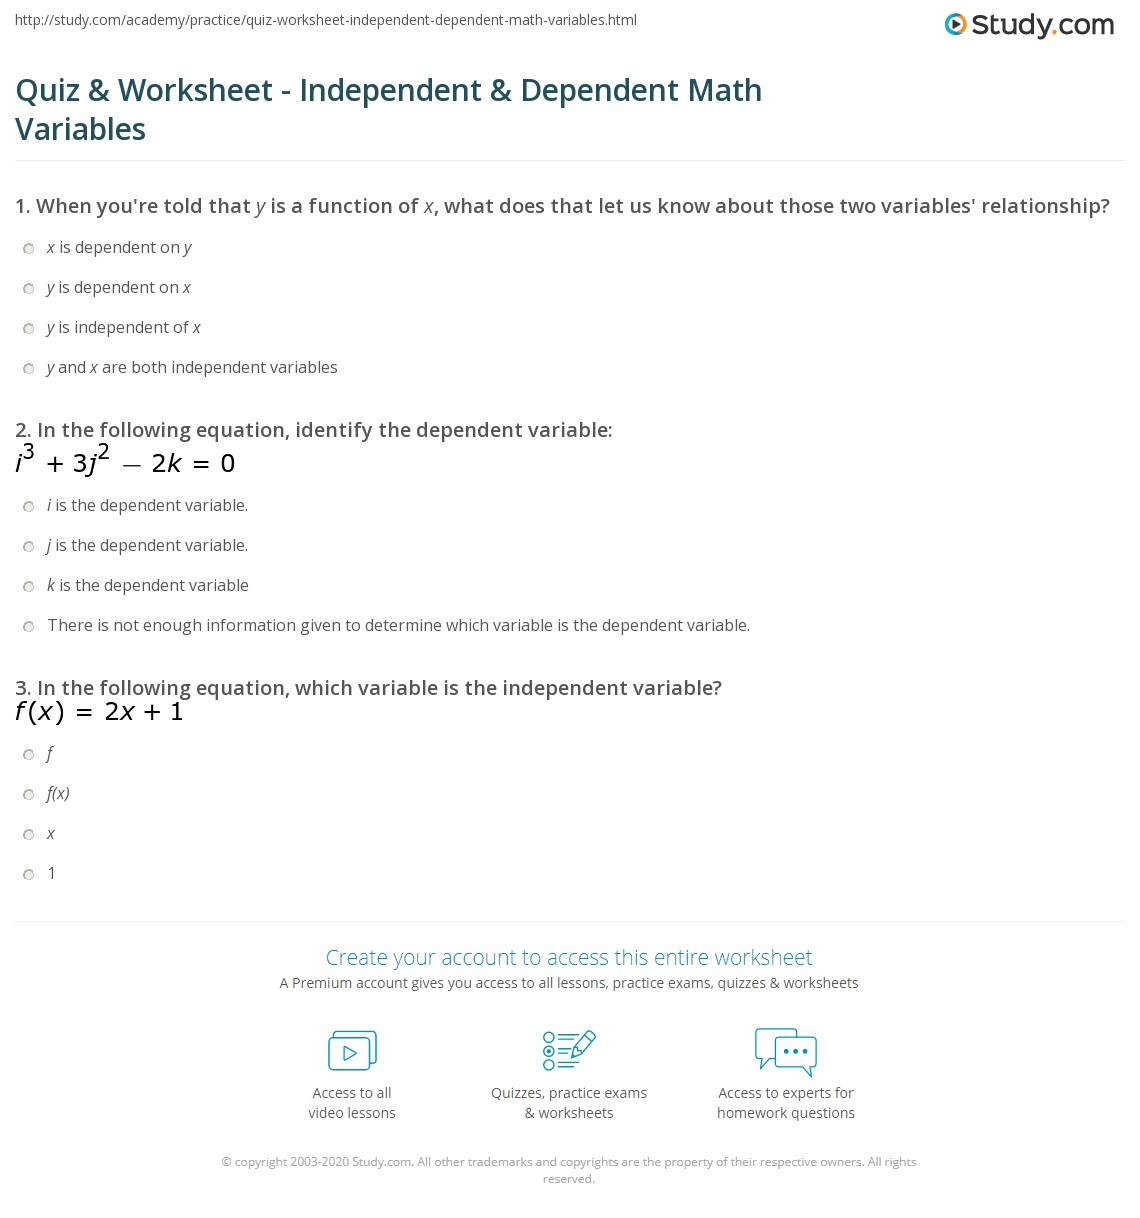 Quiz Worksheet Independent Dependent Math Variables